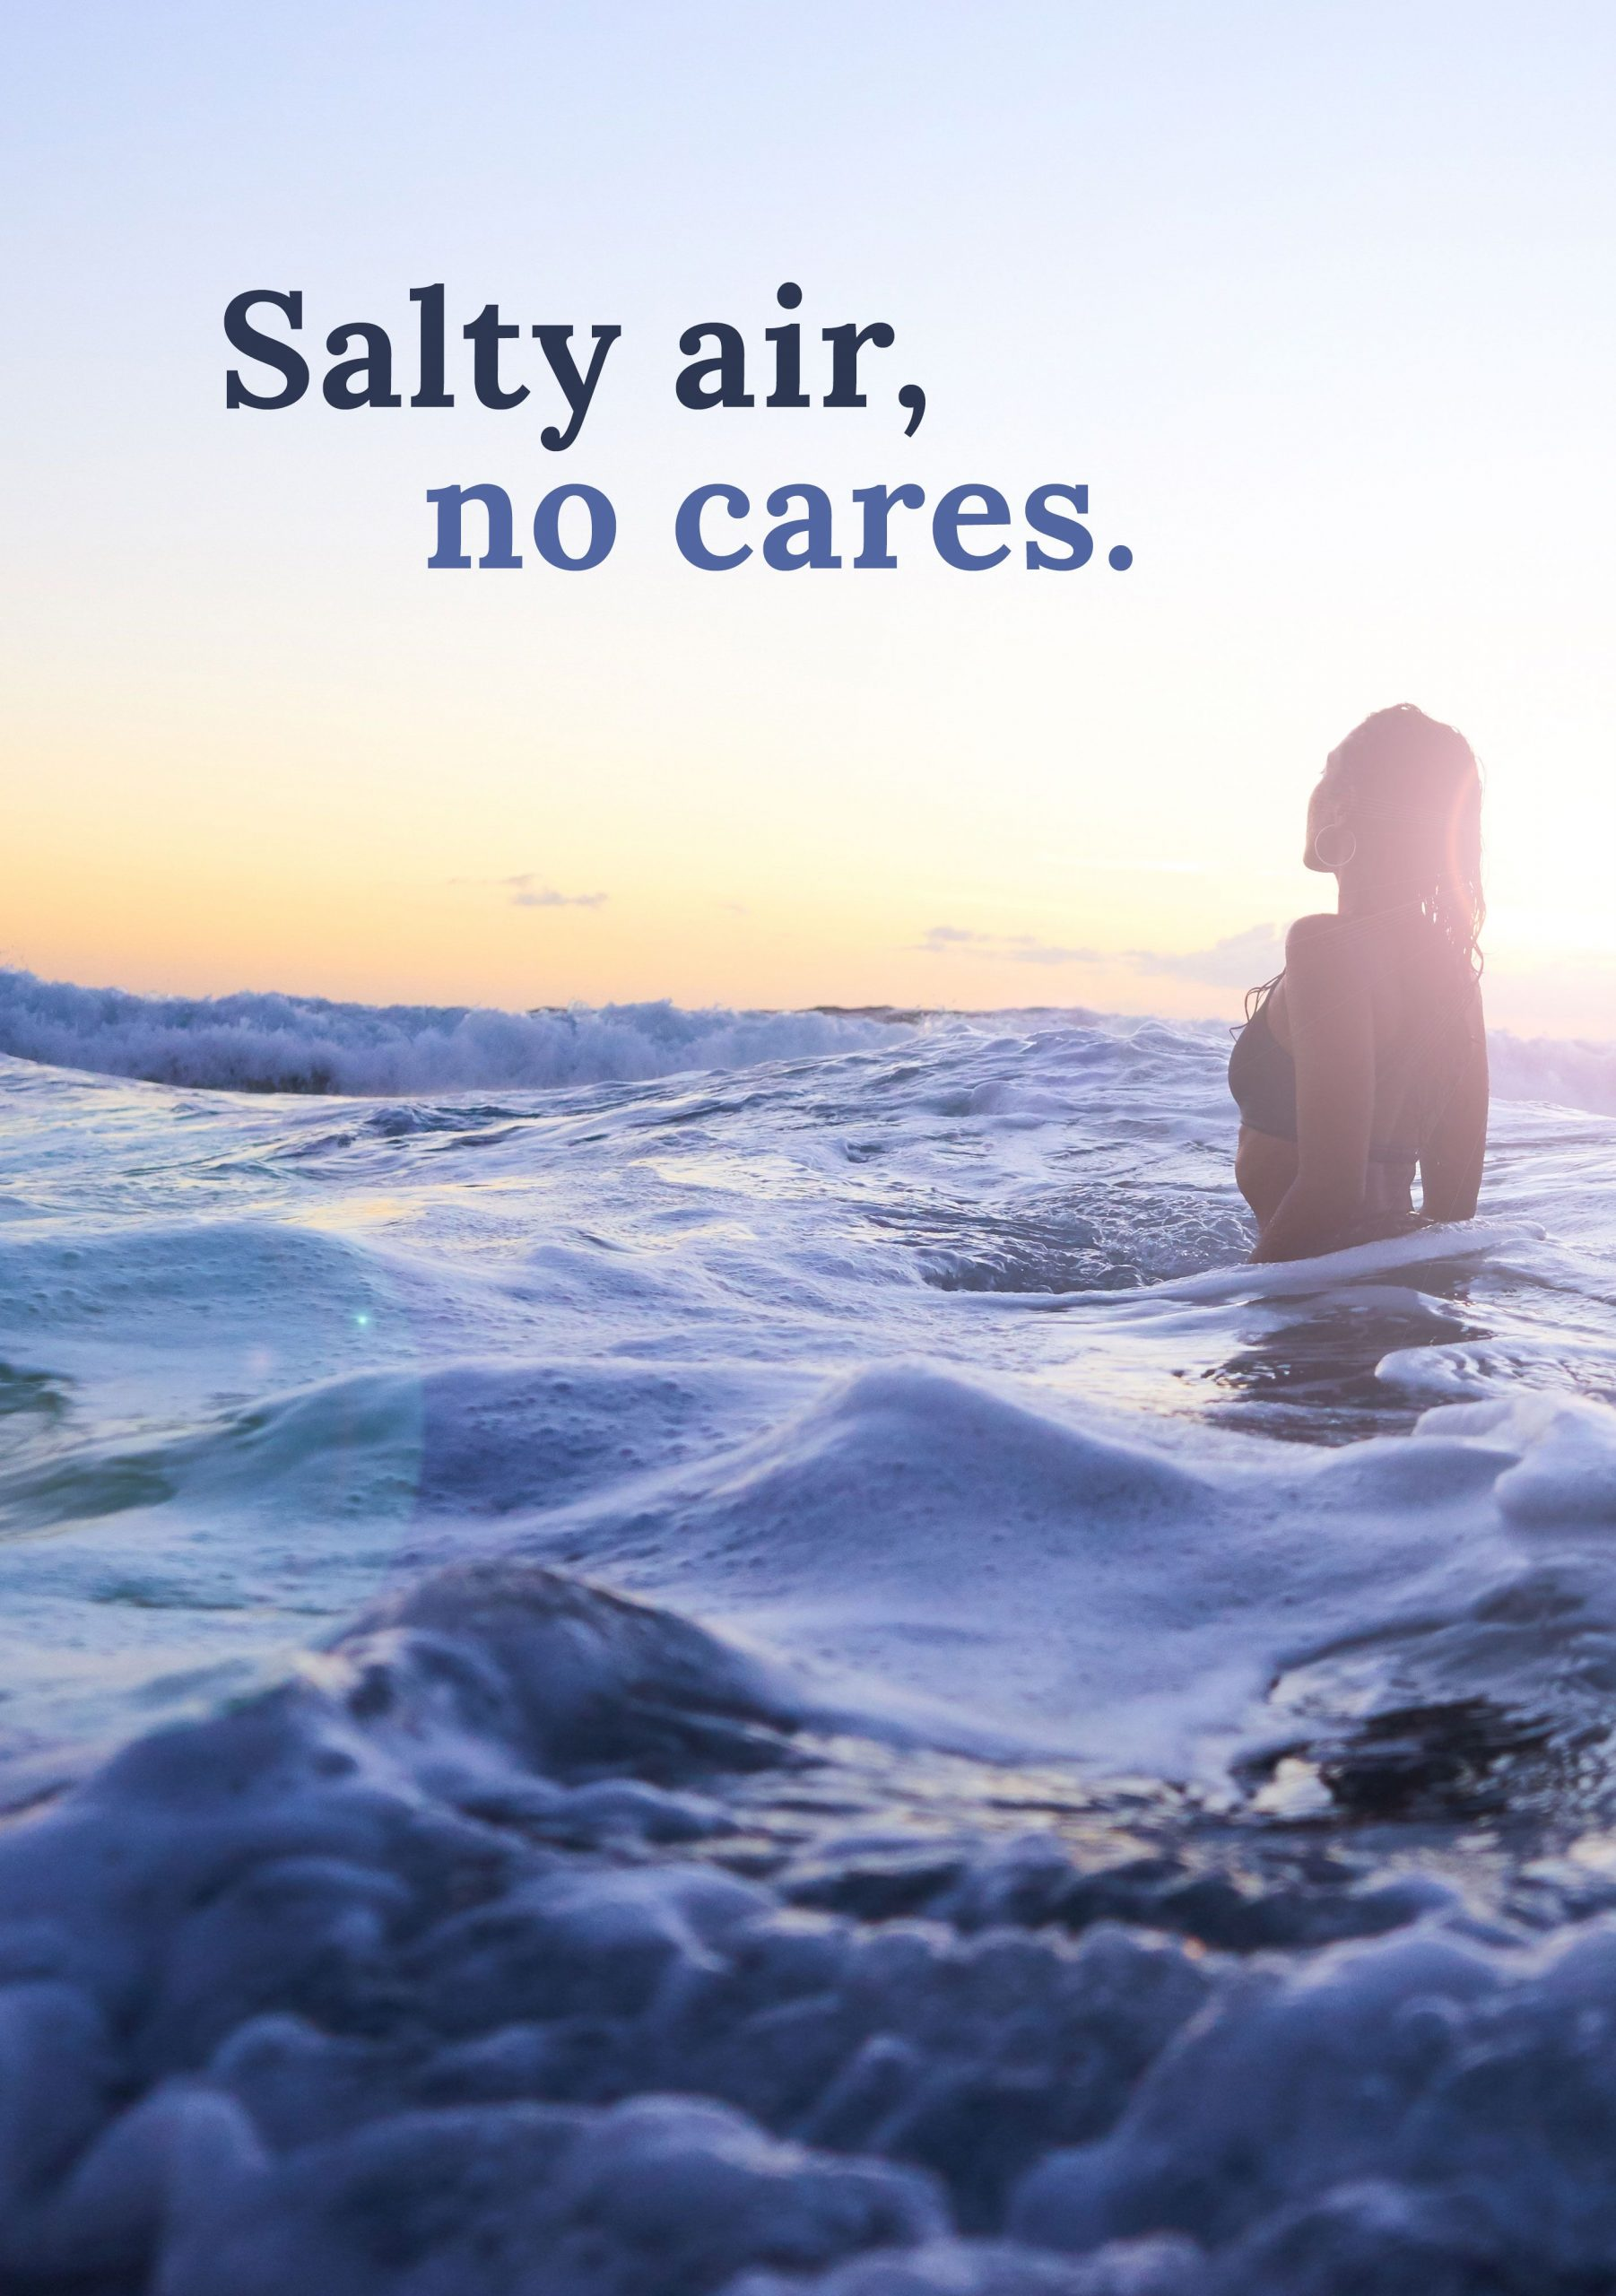 Best Beach Quotes for Instagram